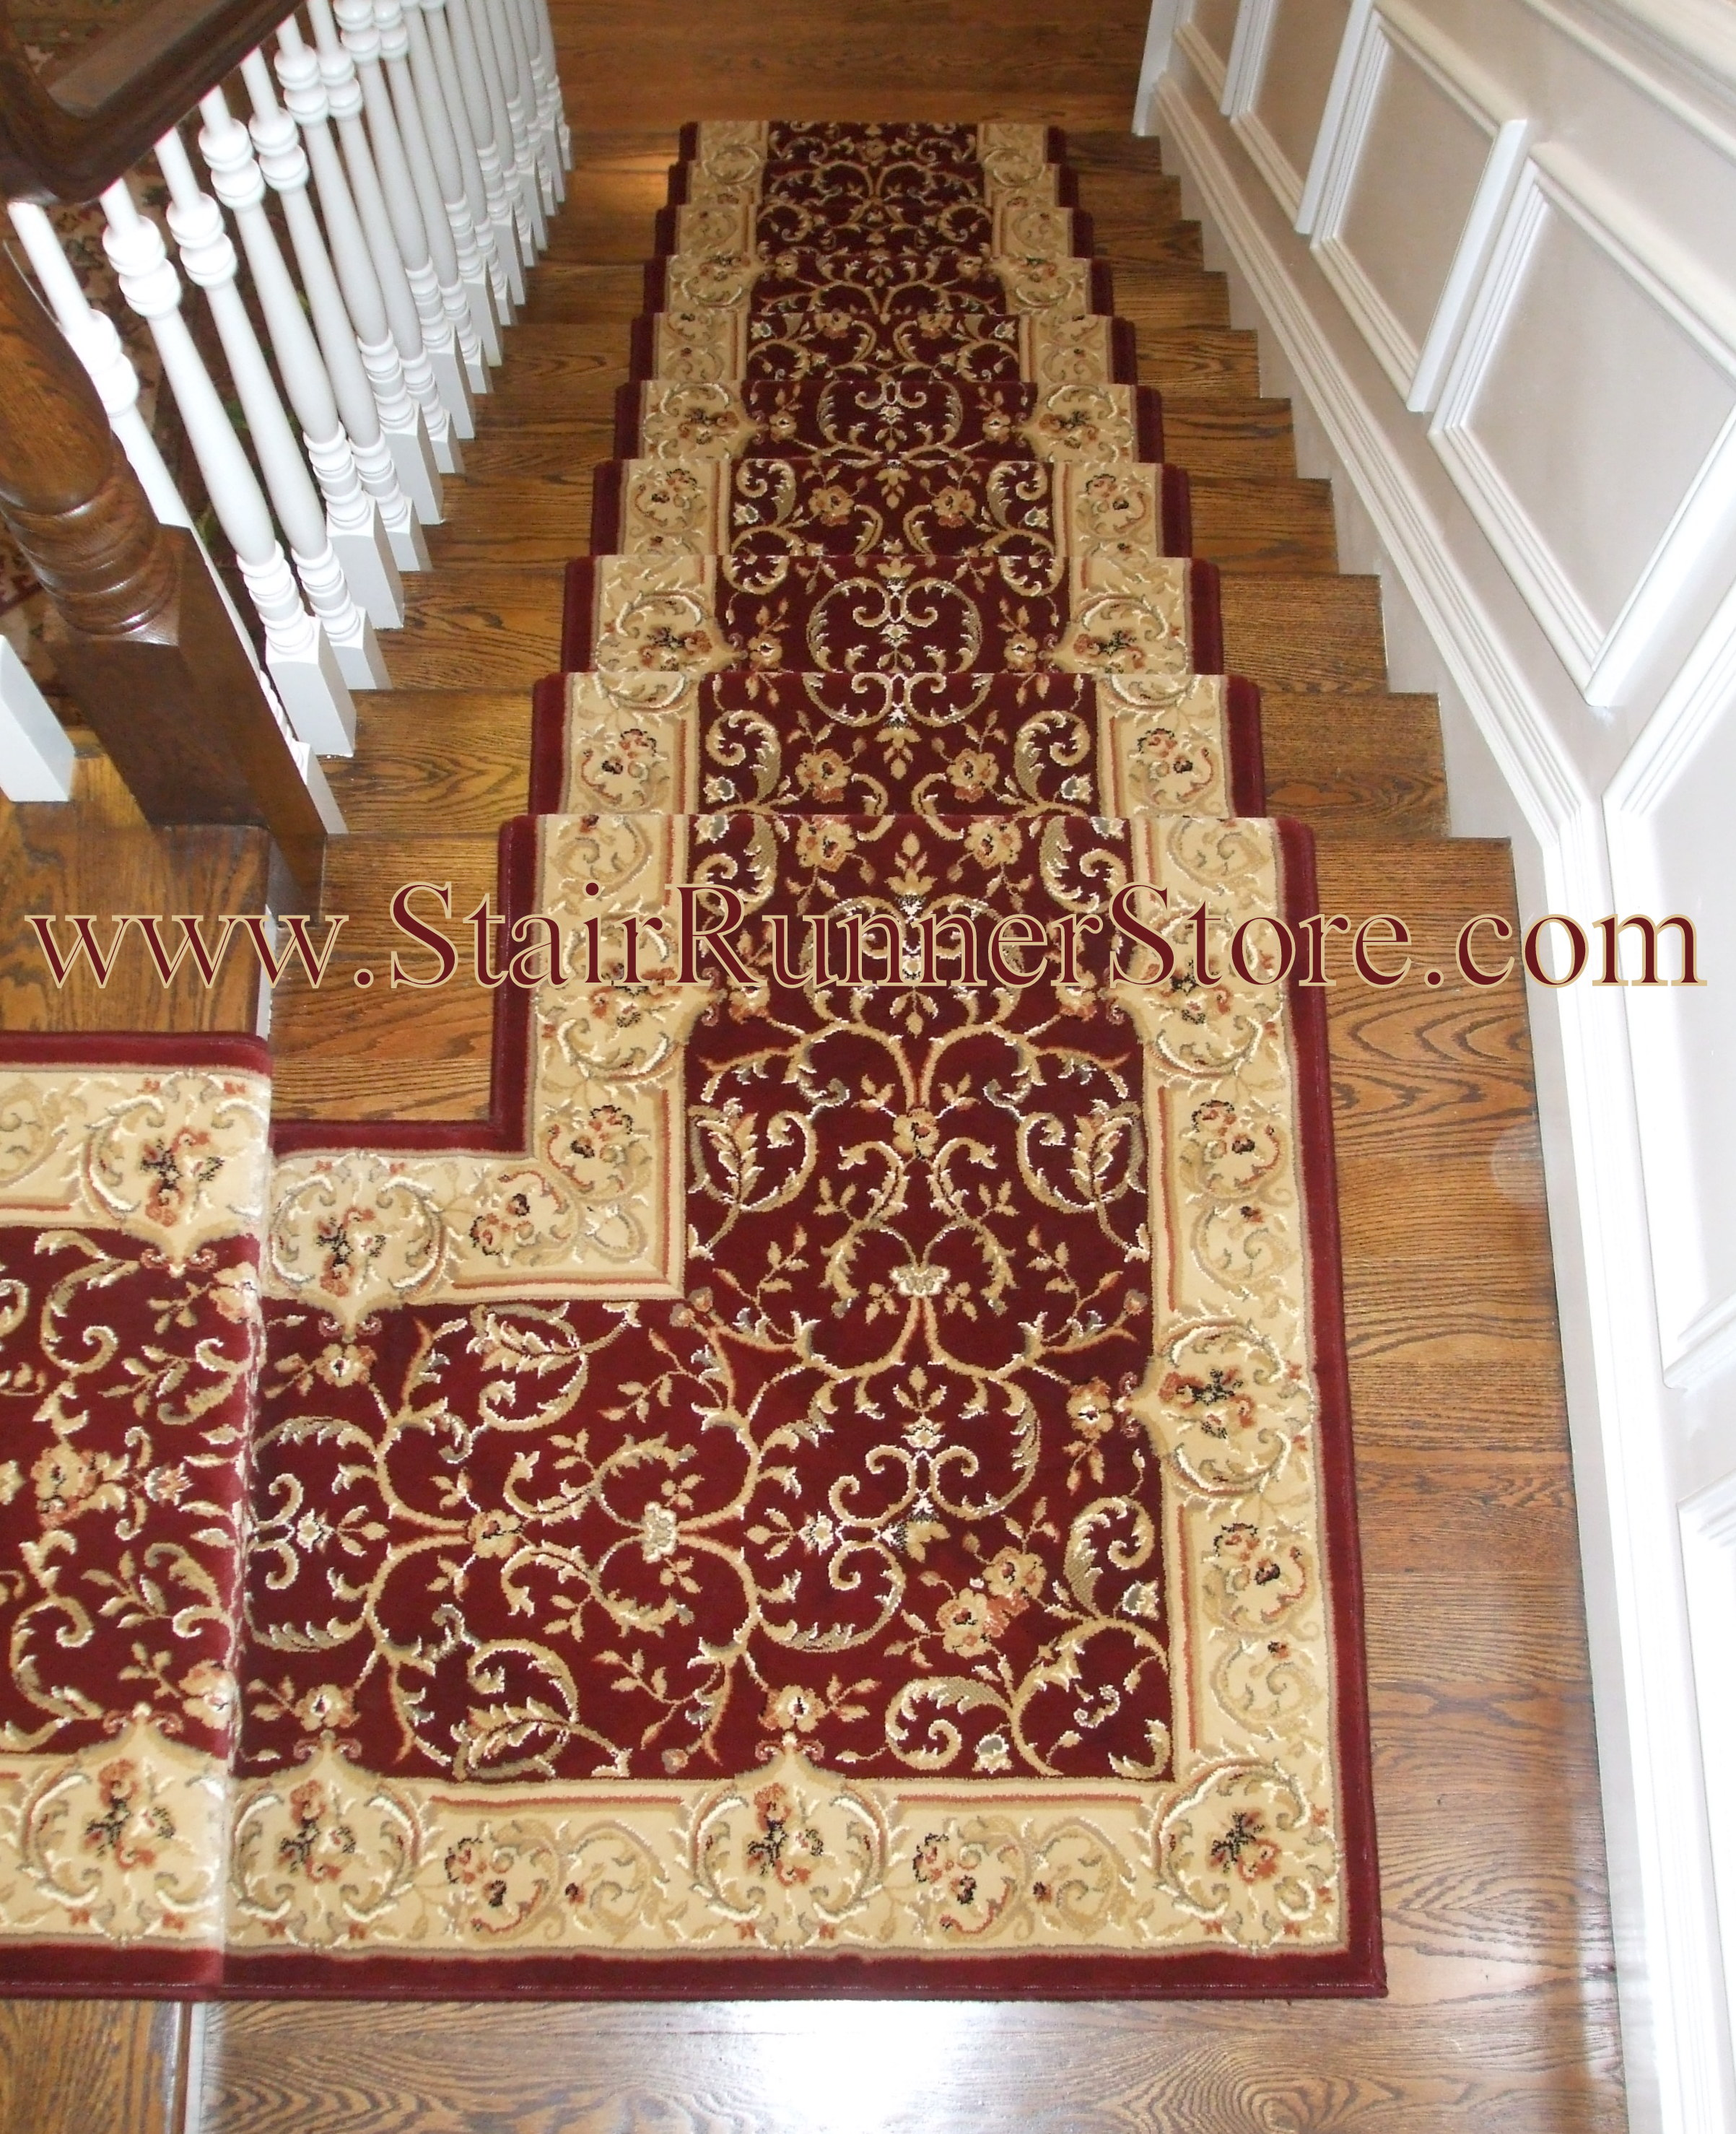 Rug One Stair Runners